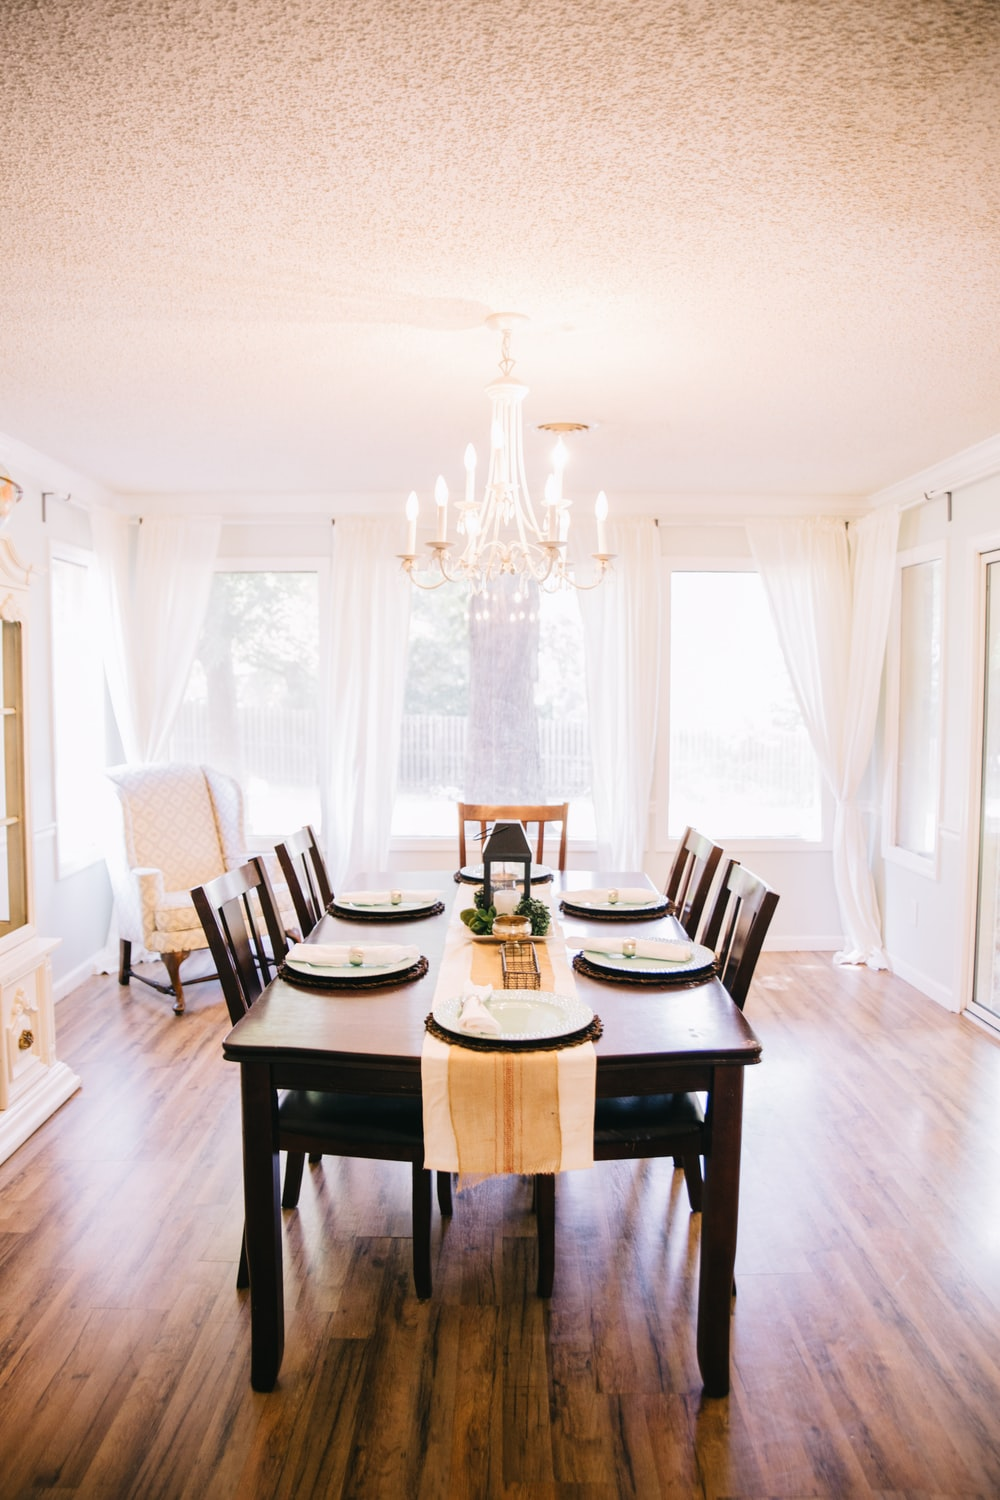 Rectangular Brown Wooden Table With Tabled Near Window